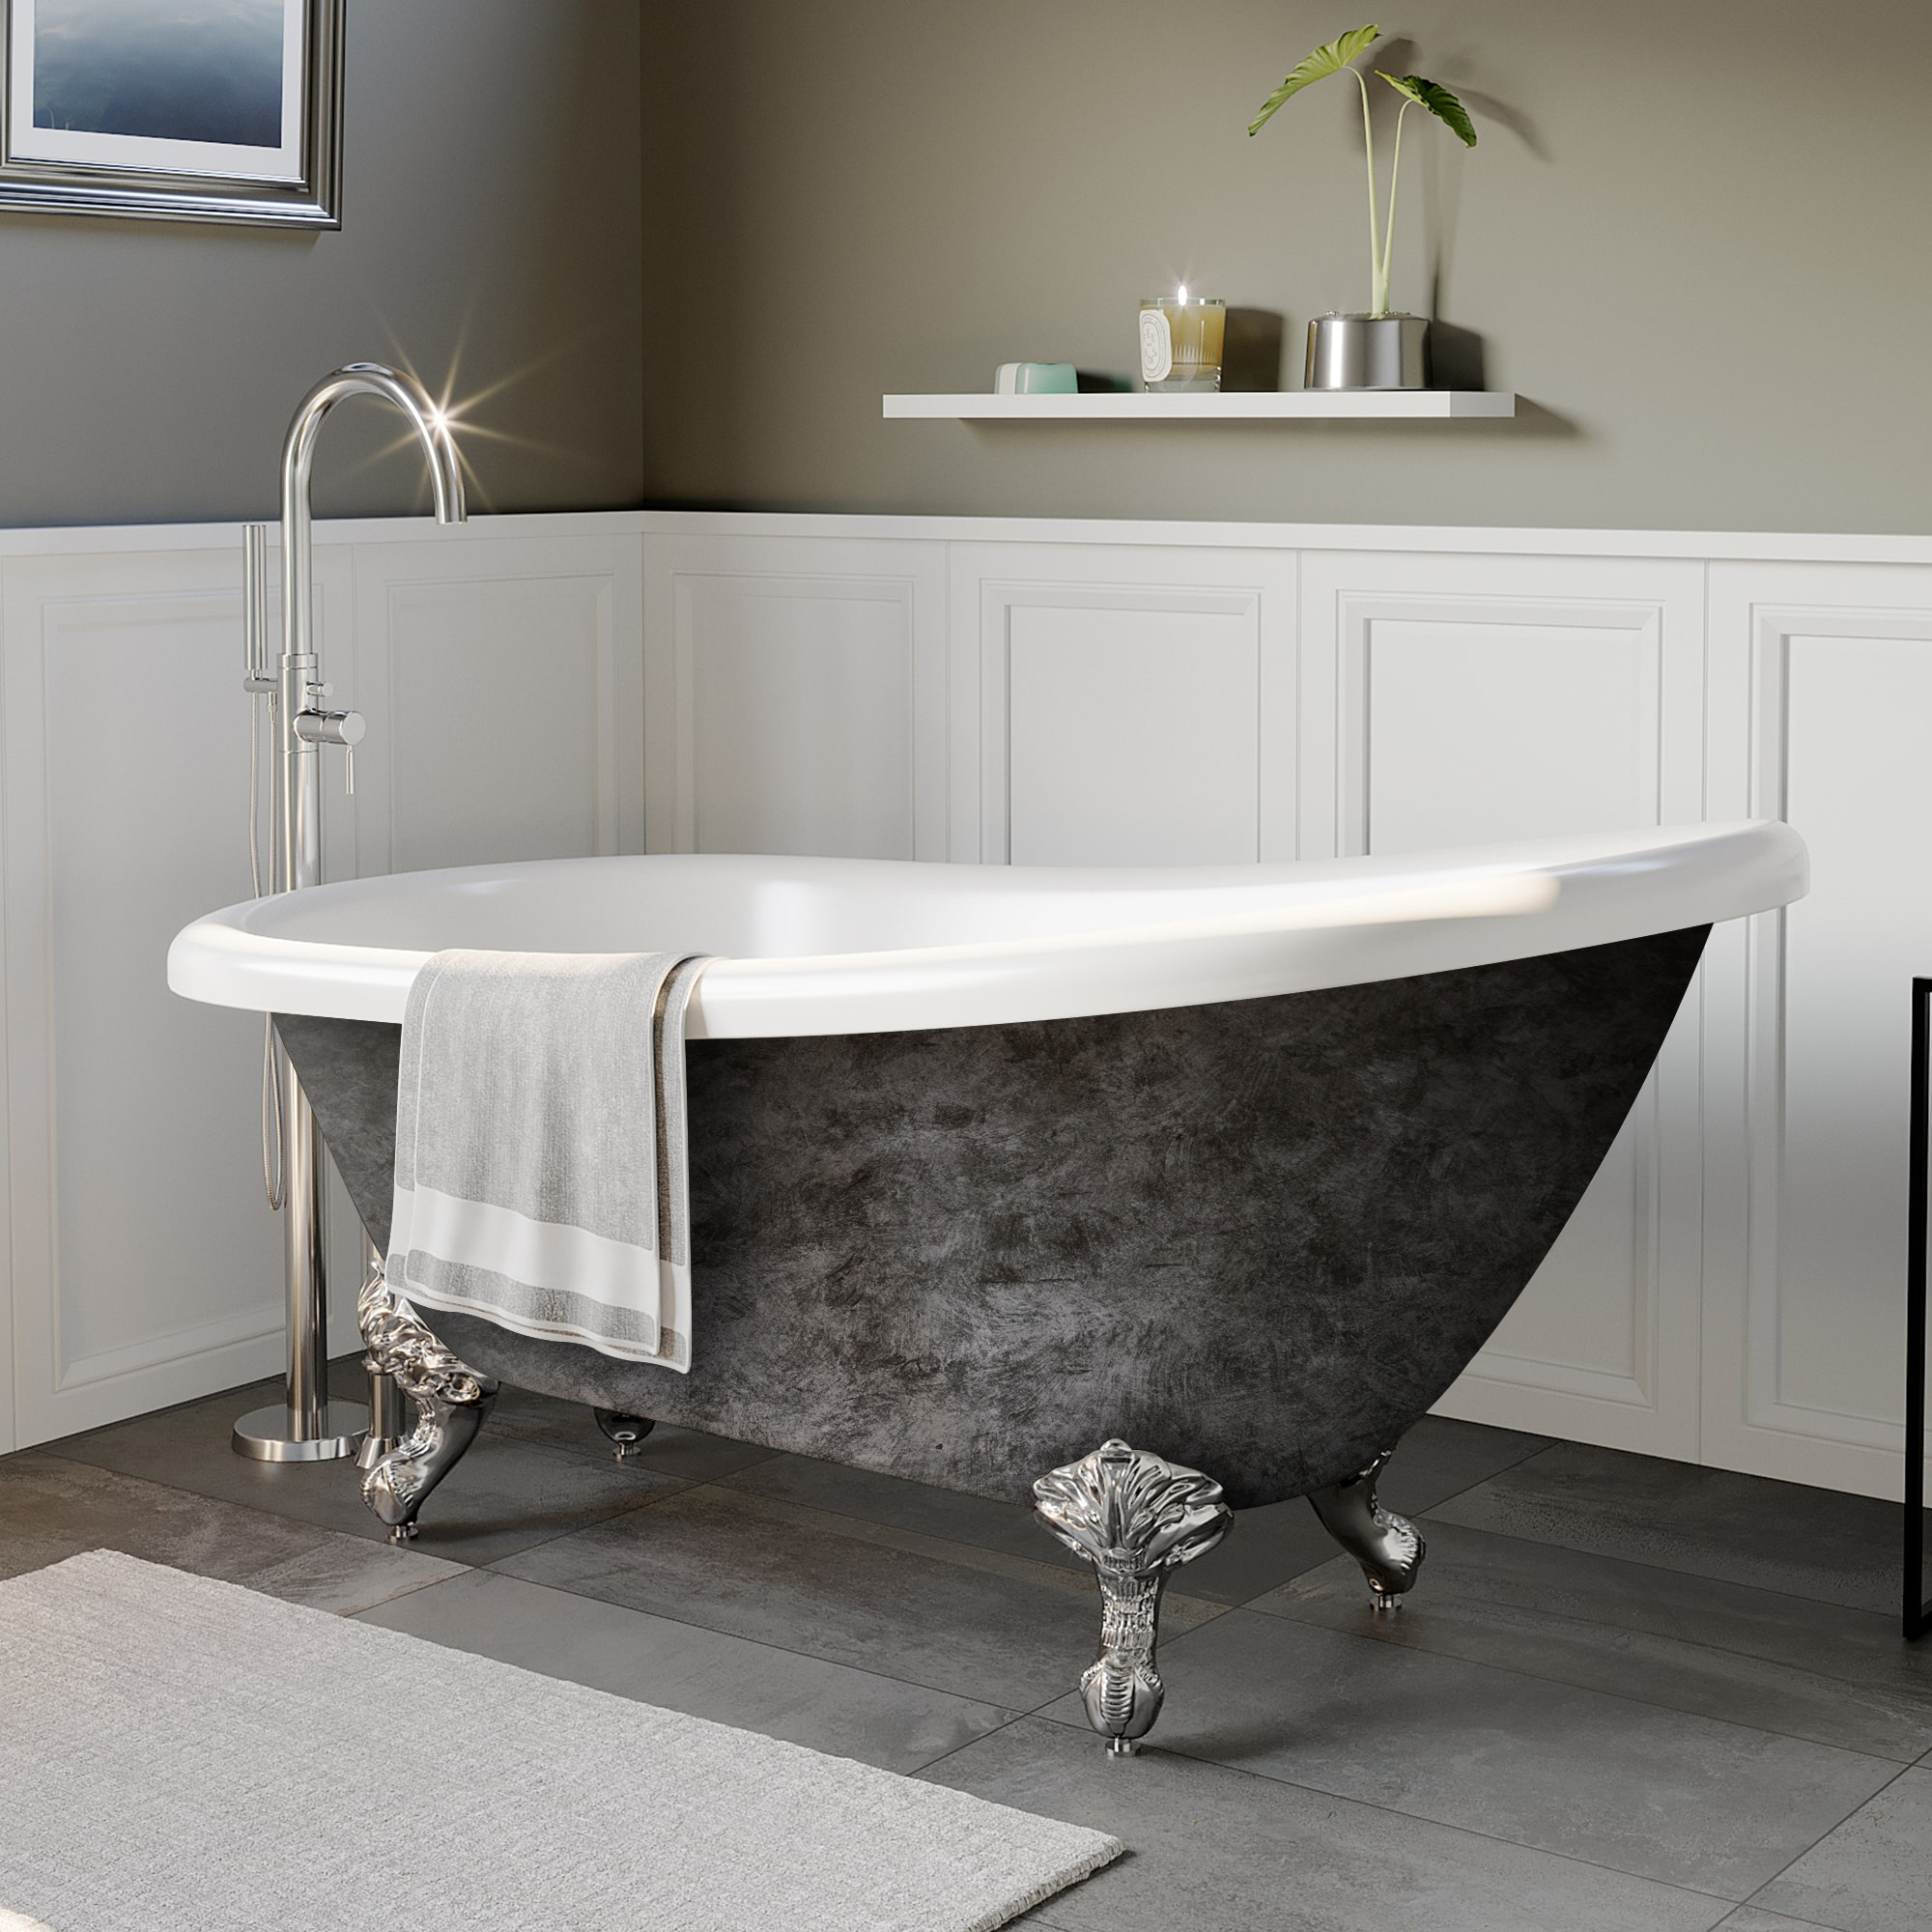 "Cambridge Scorched Platinum 67"" x 28"" Acrylic Slipper Bathtub with No Faucet Holes and Polished Chrome Ball and Claw Feet"